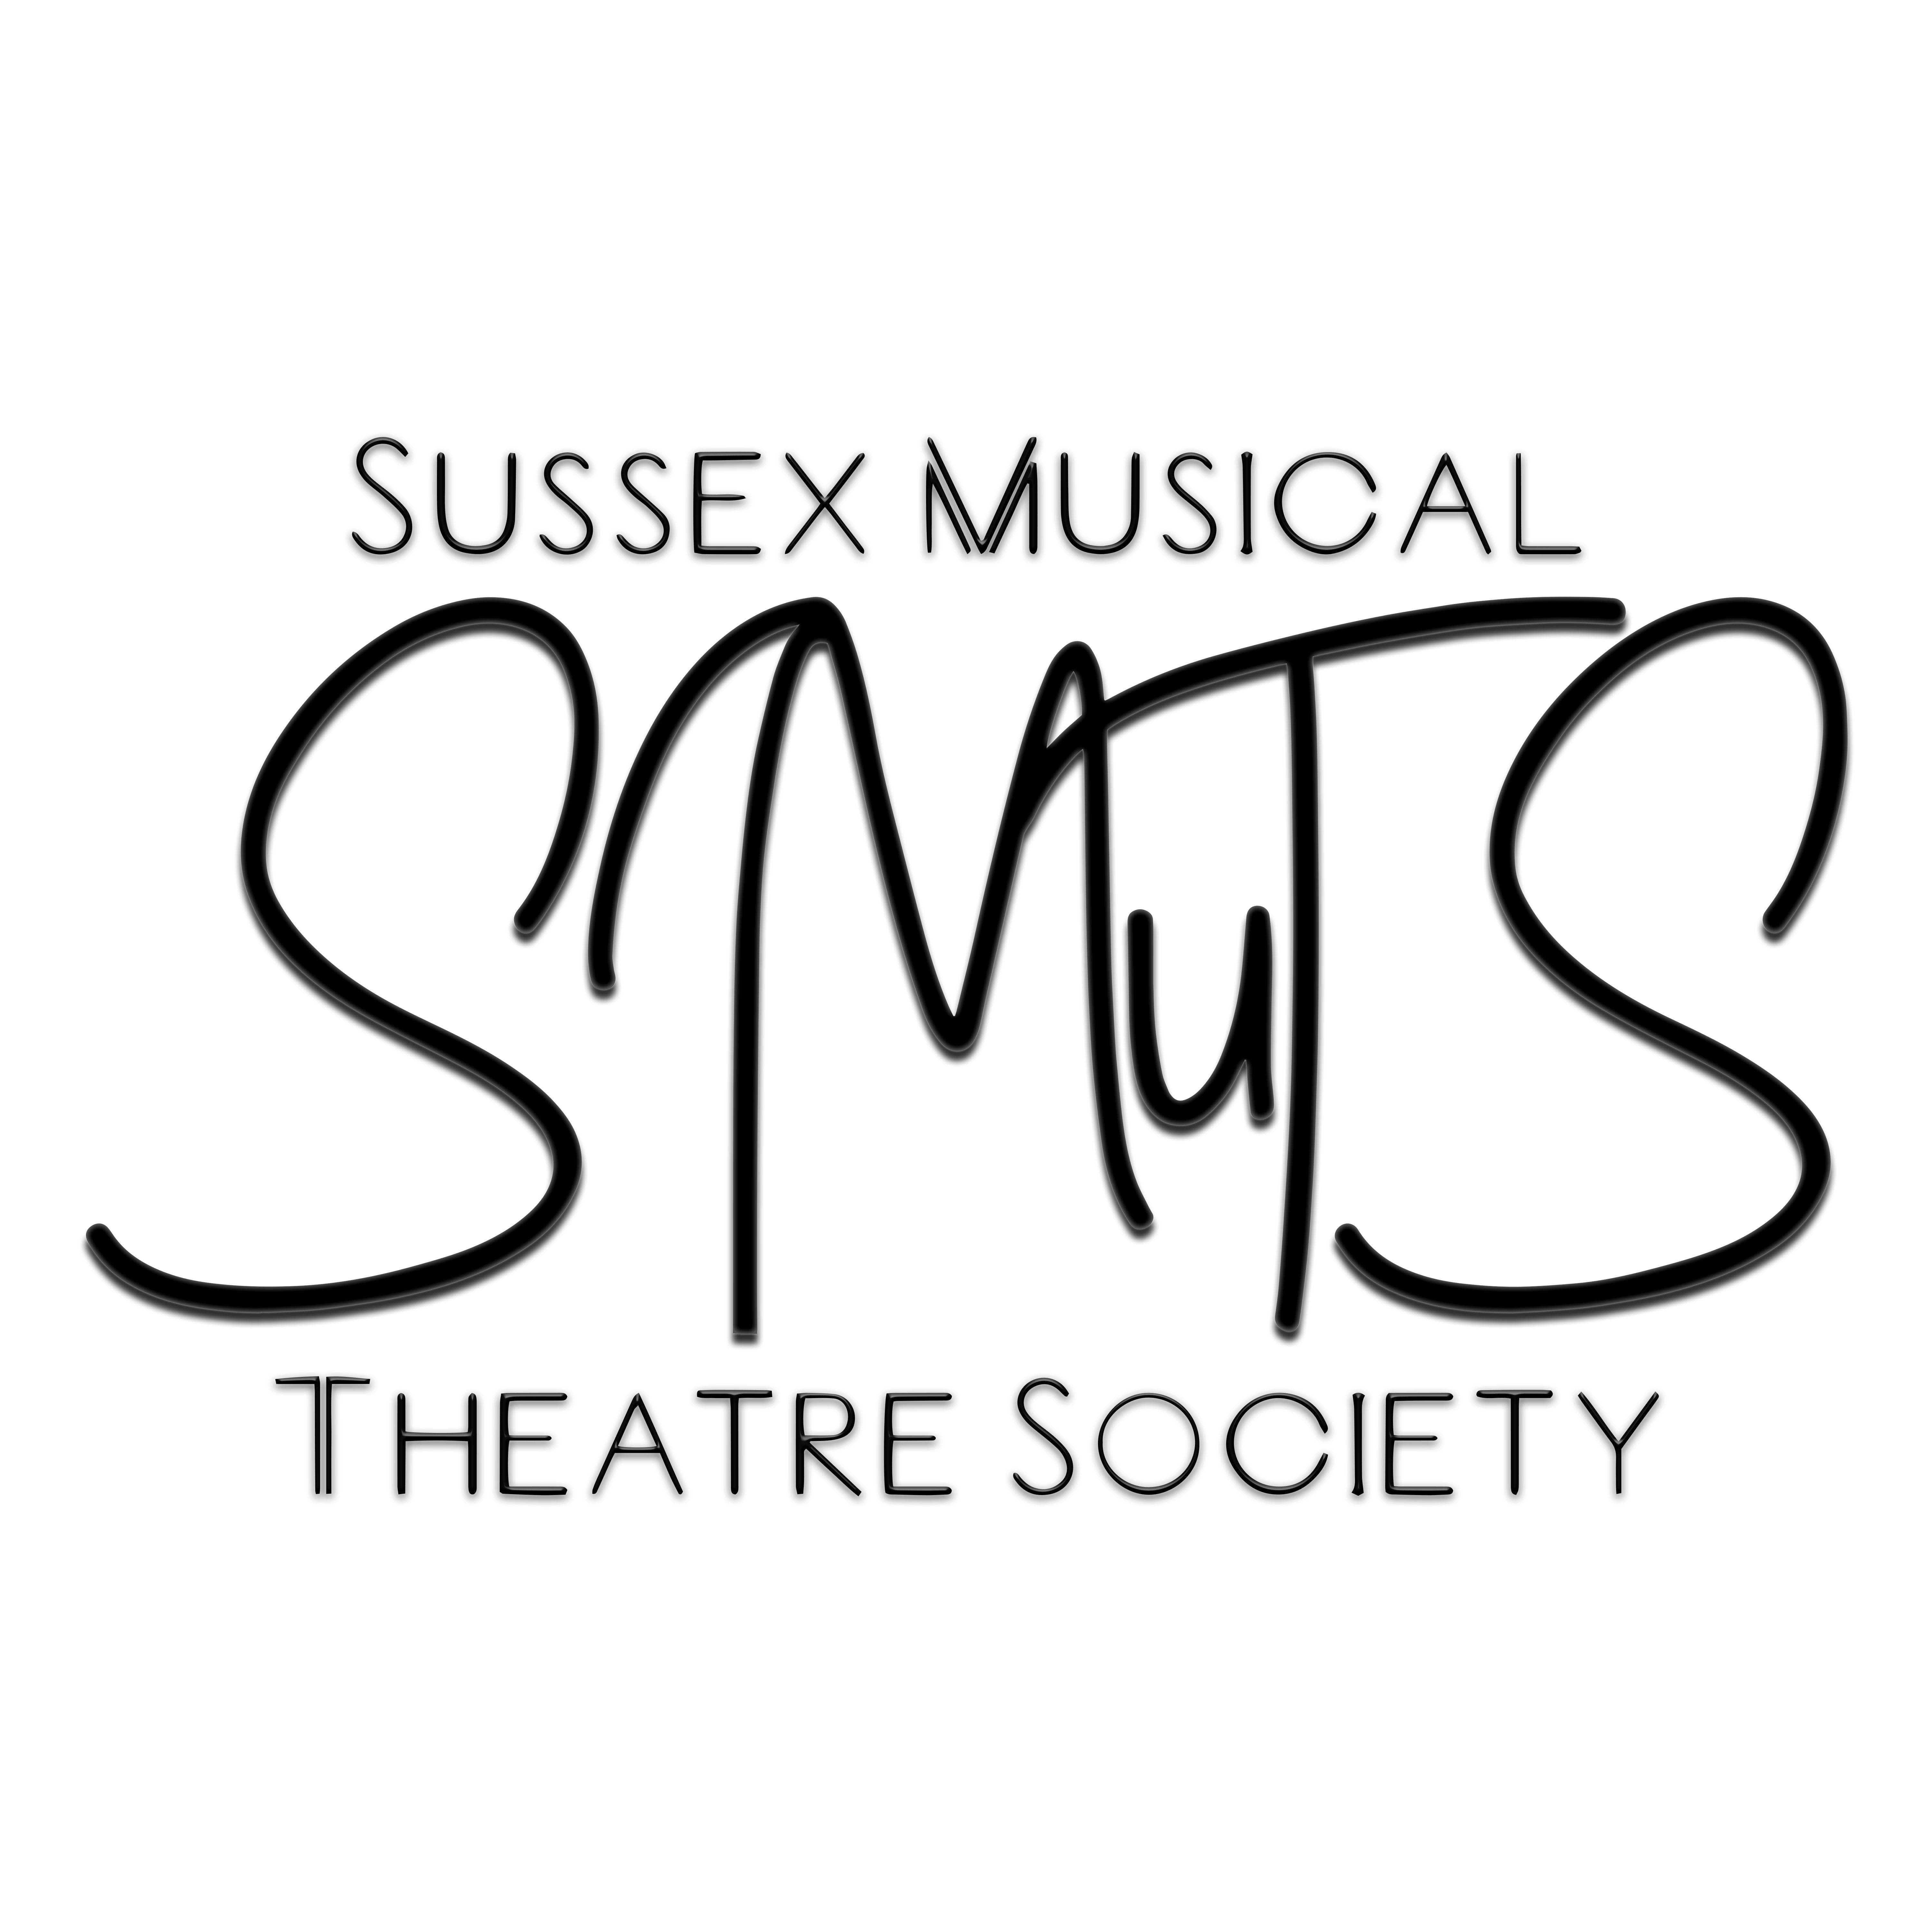 Sussex Musical Theatre Society (SMuTS) image